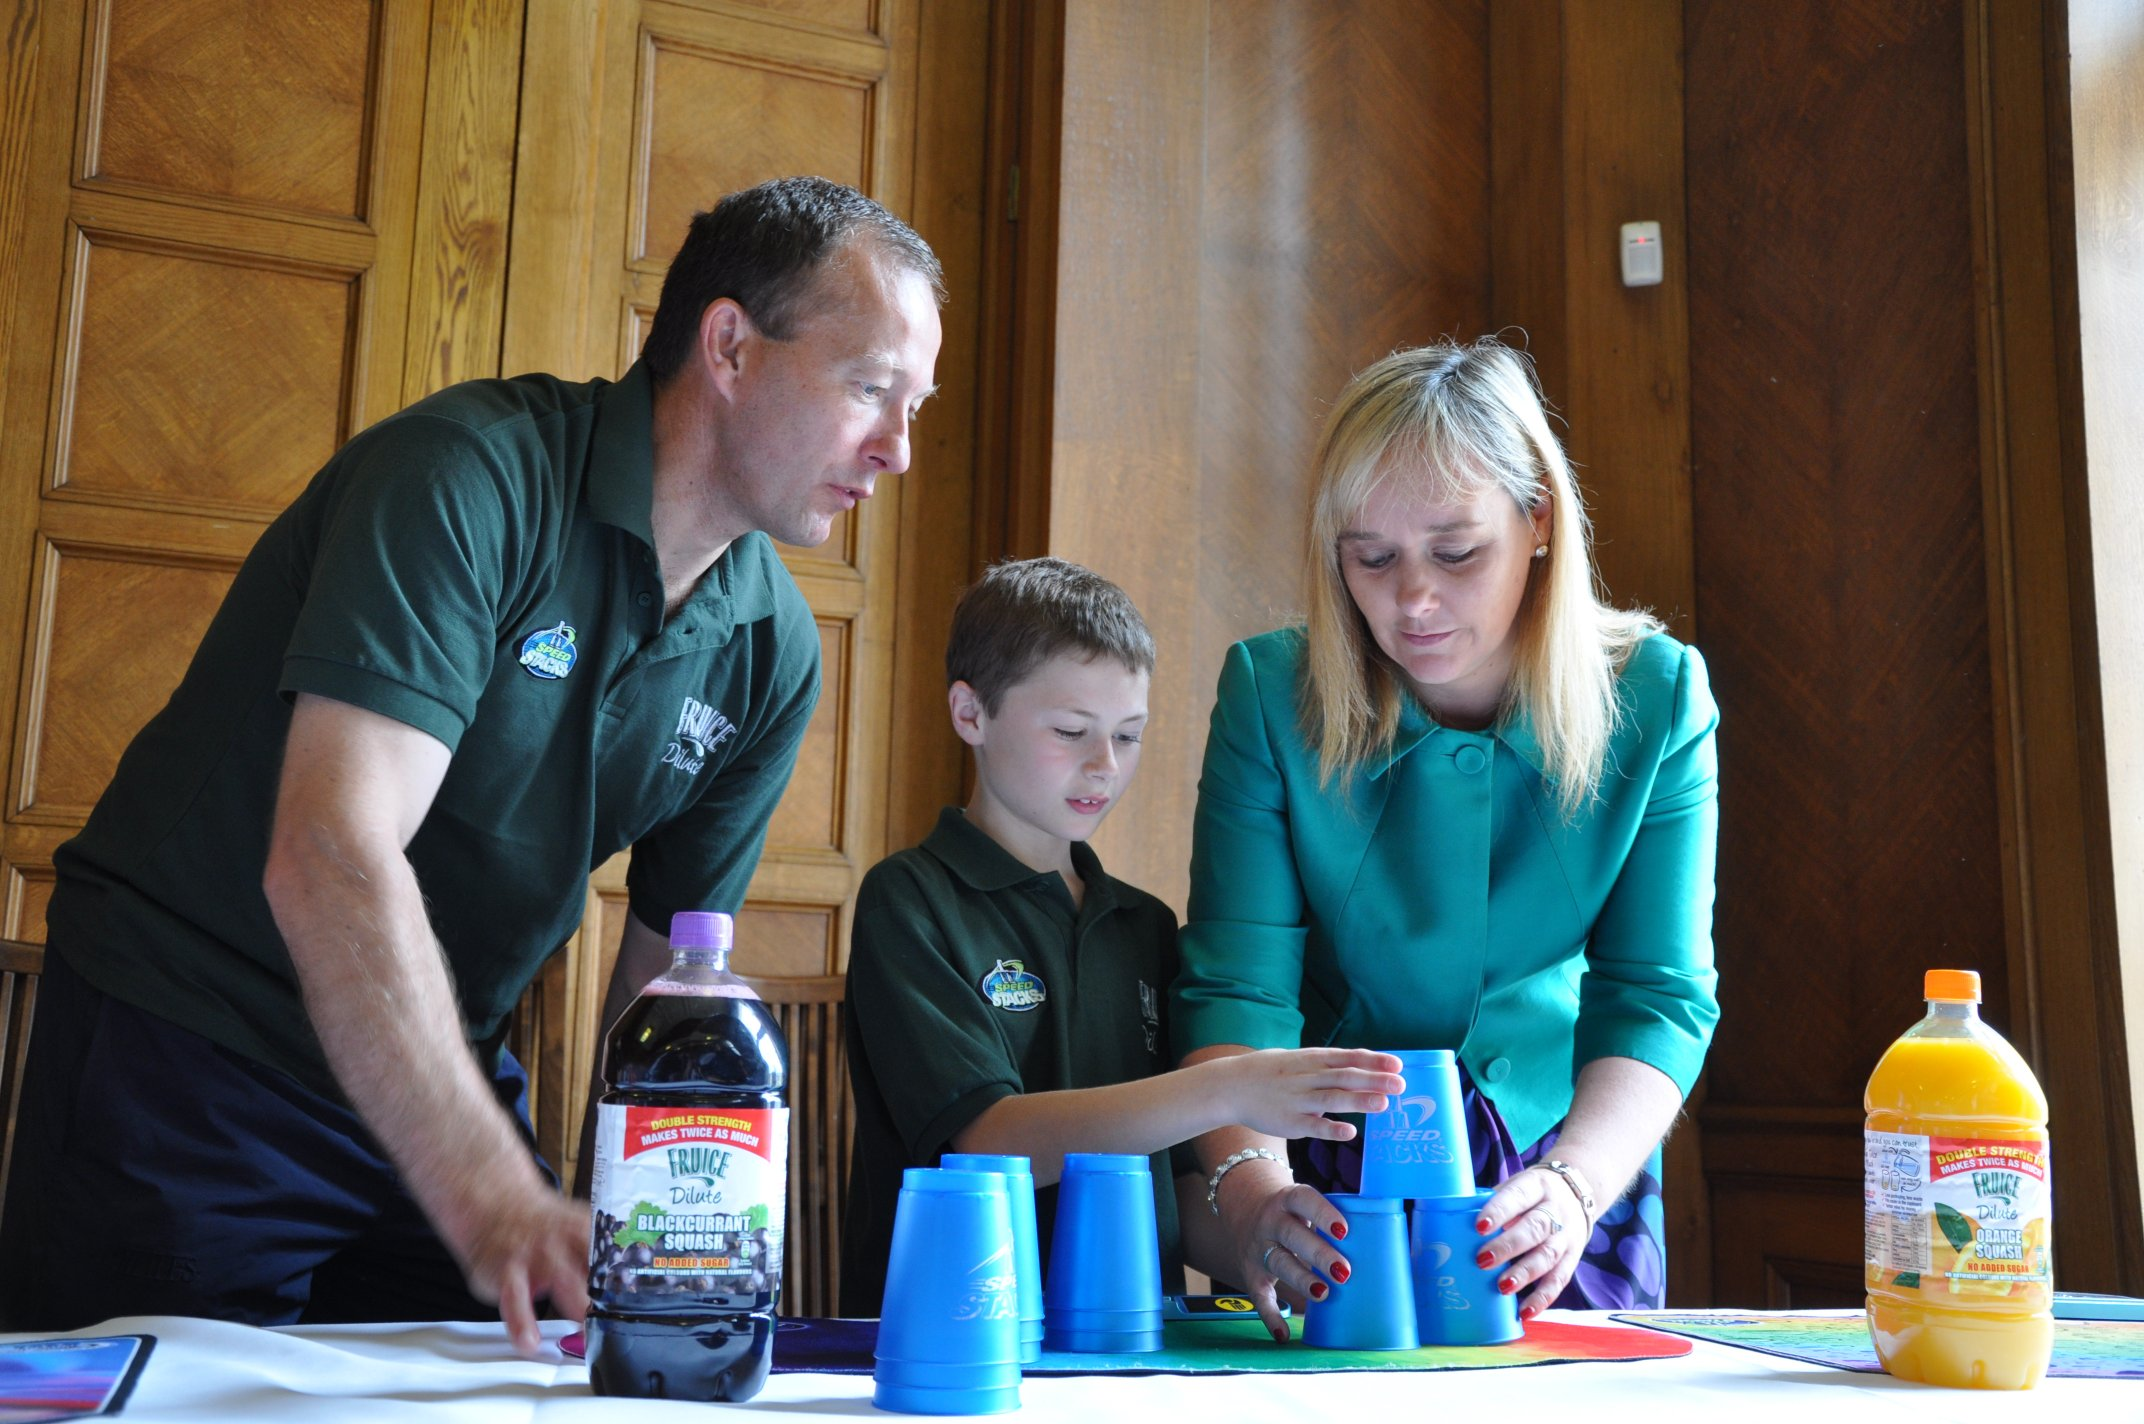 Coach of the Irish Sport Stacking Team, Micheal Nolan is pictured giving some tips on the sport to Michelle McIlveen MLA, Chairperson of the Culture, Arts and Leisure Committee.